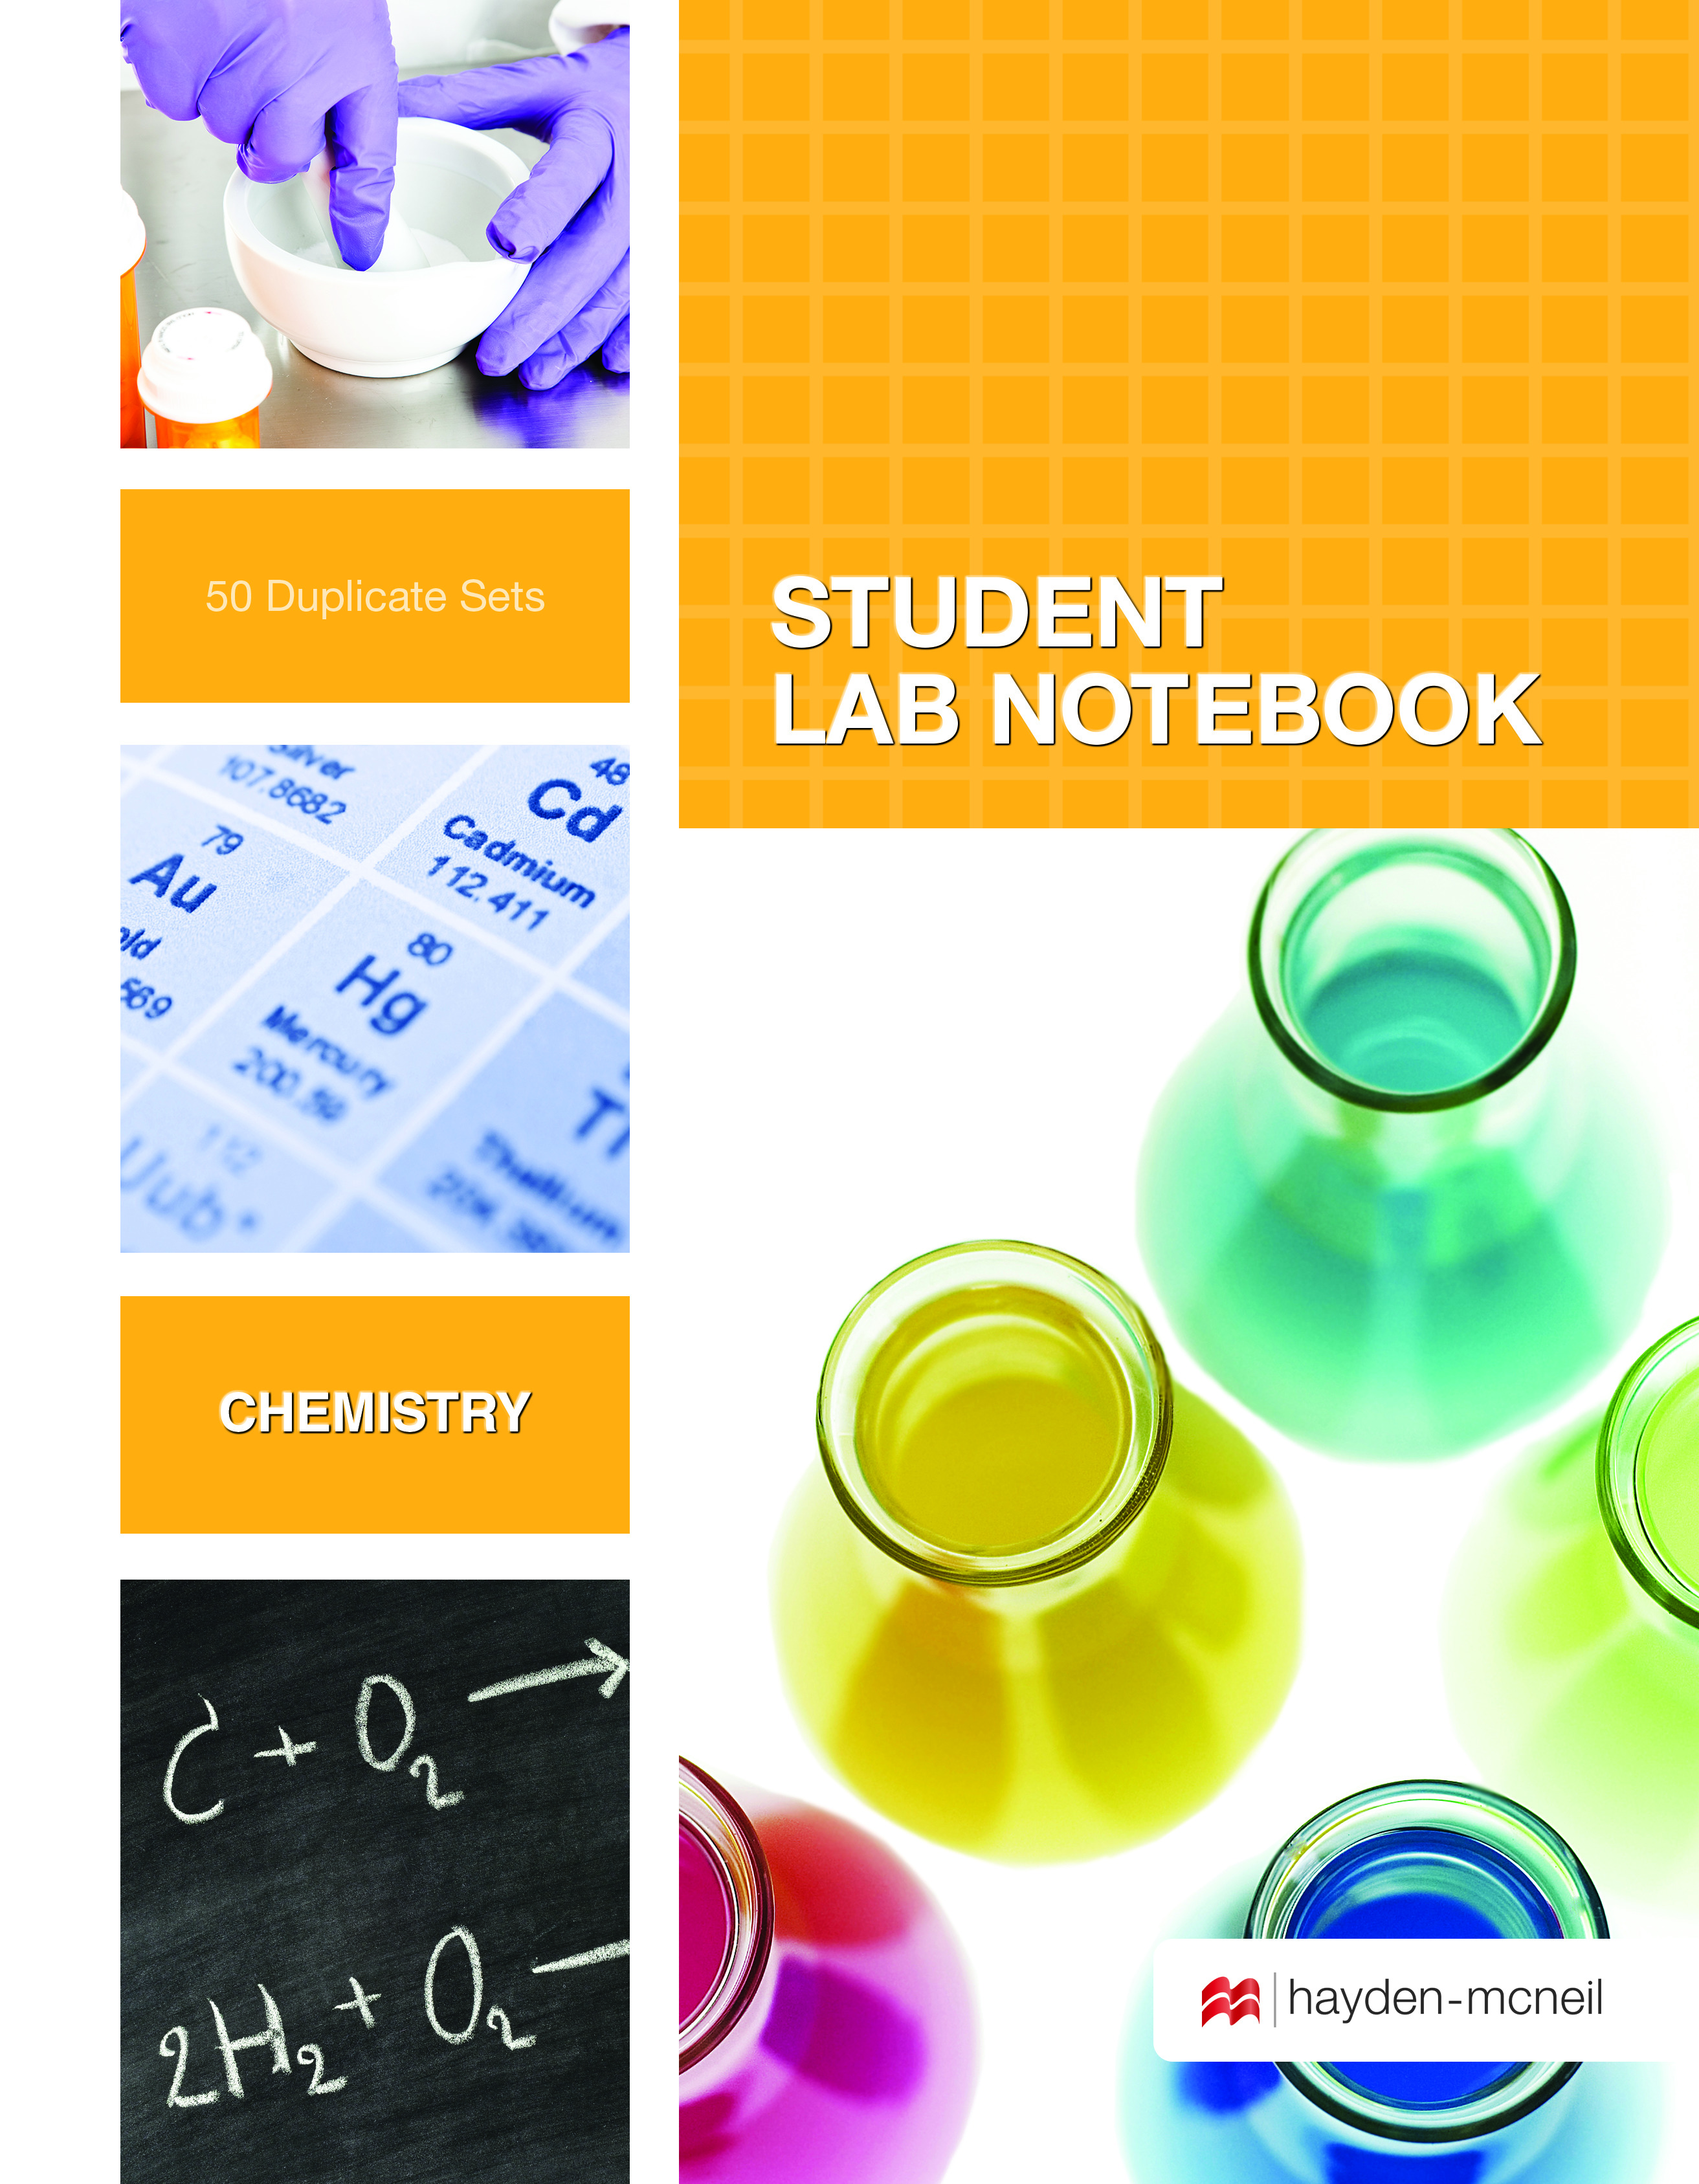 chemistry lab notebook Ask a librarian ask a question: how would you cite a lab notebook in acs format last updated laboratory notes for ch 203: organic chemistry laboratory i.